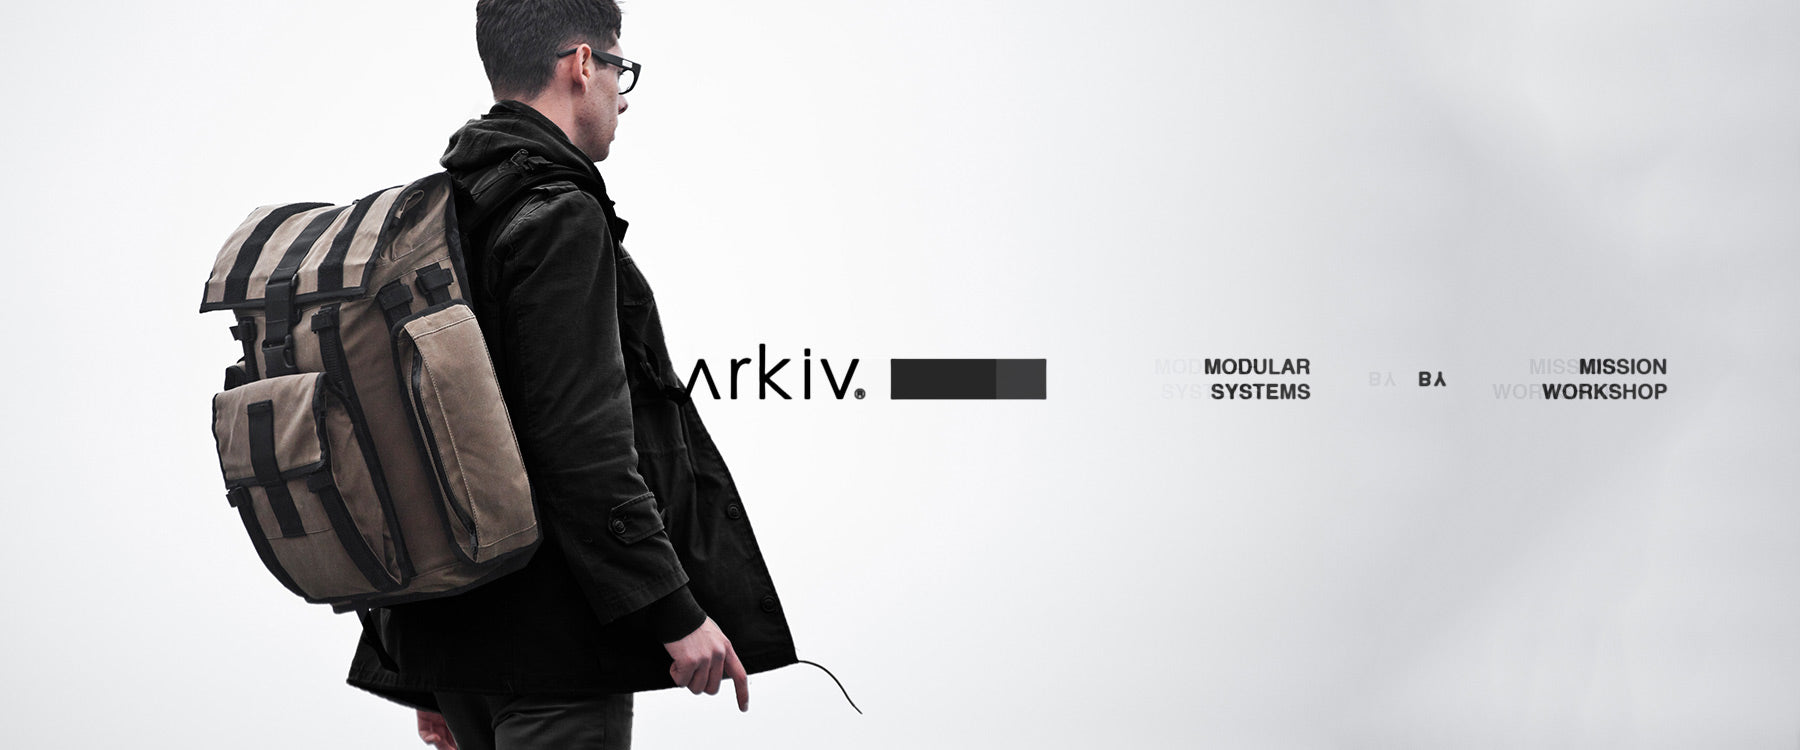 Arkiv Modular Systems - Build your bag. Give your bag the freedom to evolve